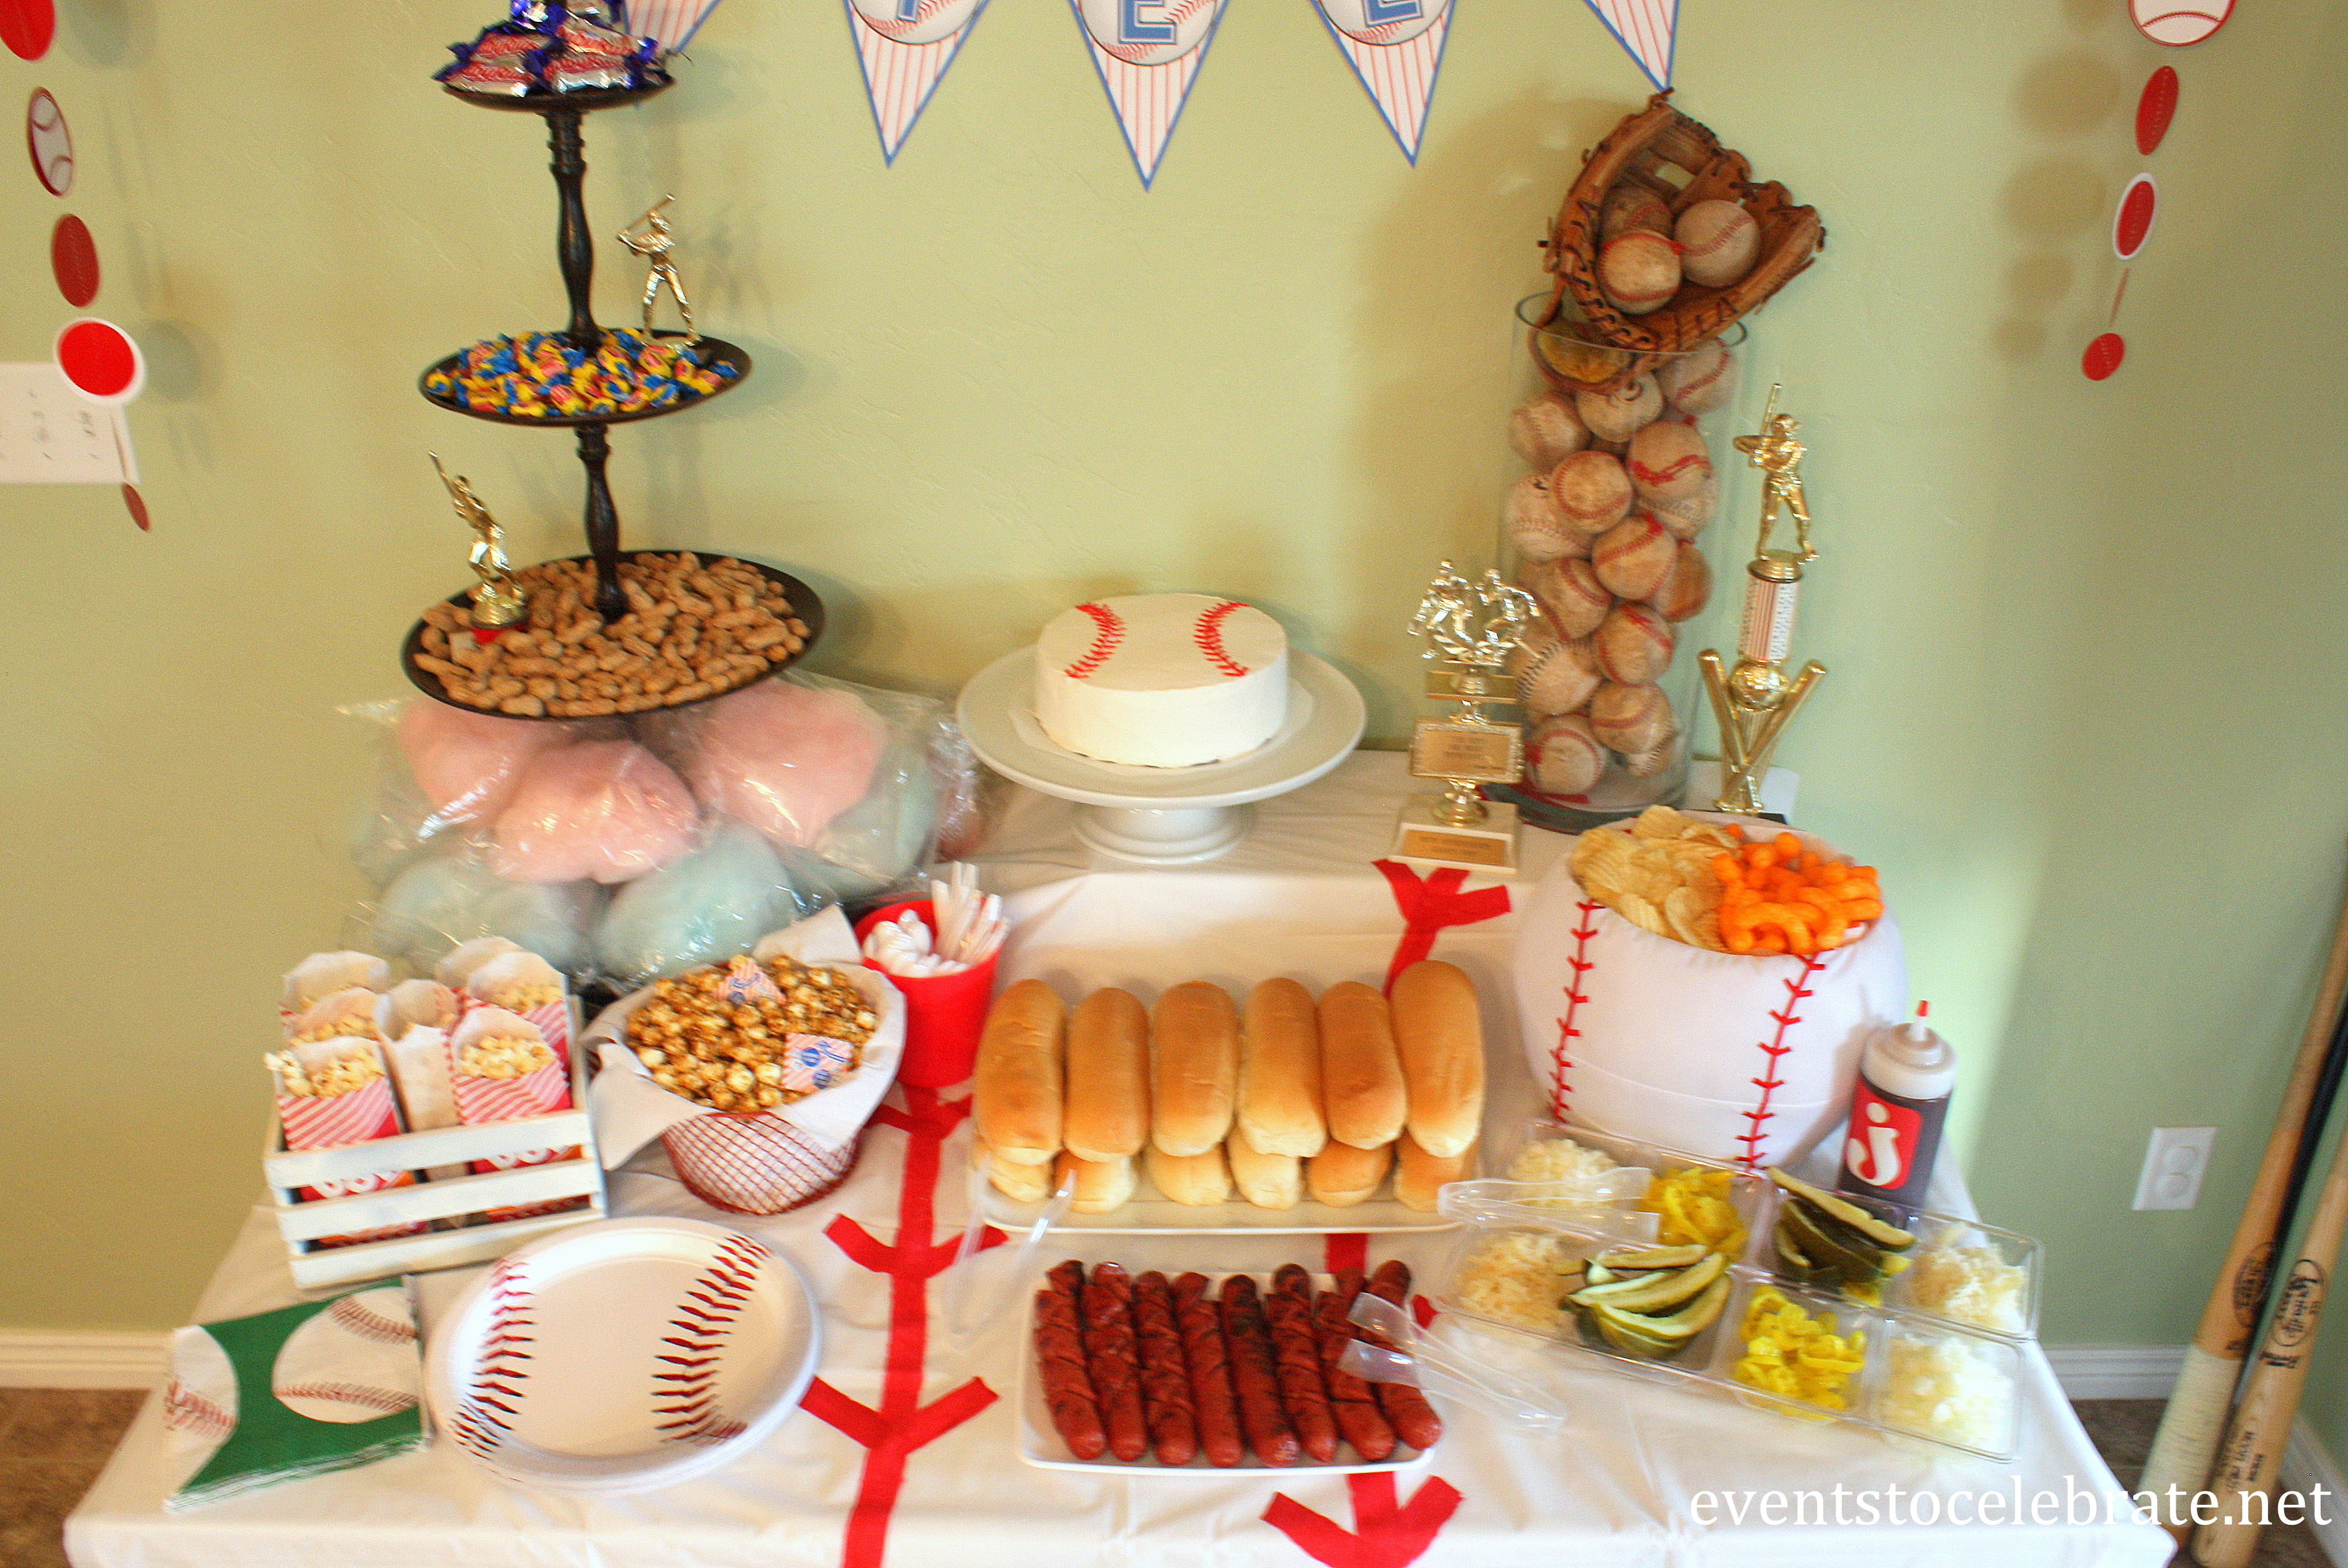 Baseball Birthday Party Ideas - events to CELEBRATE!